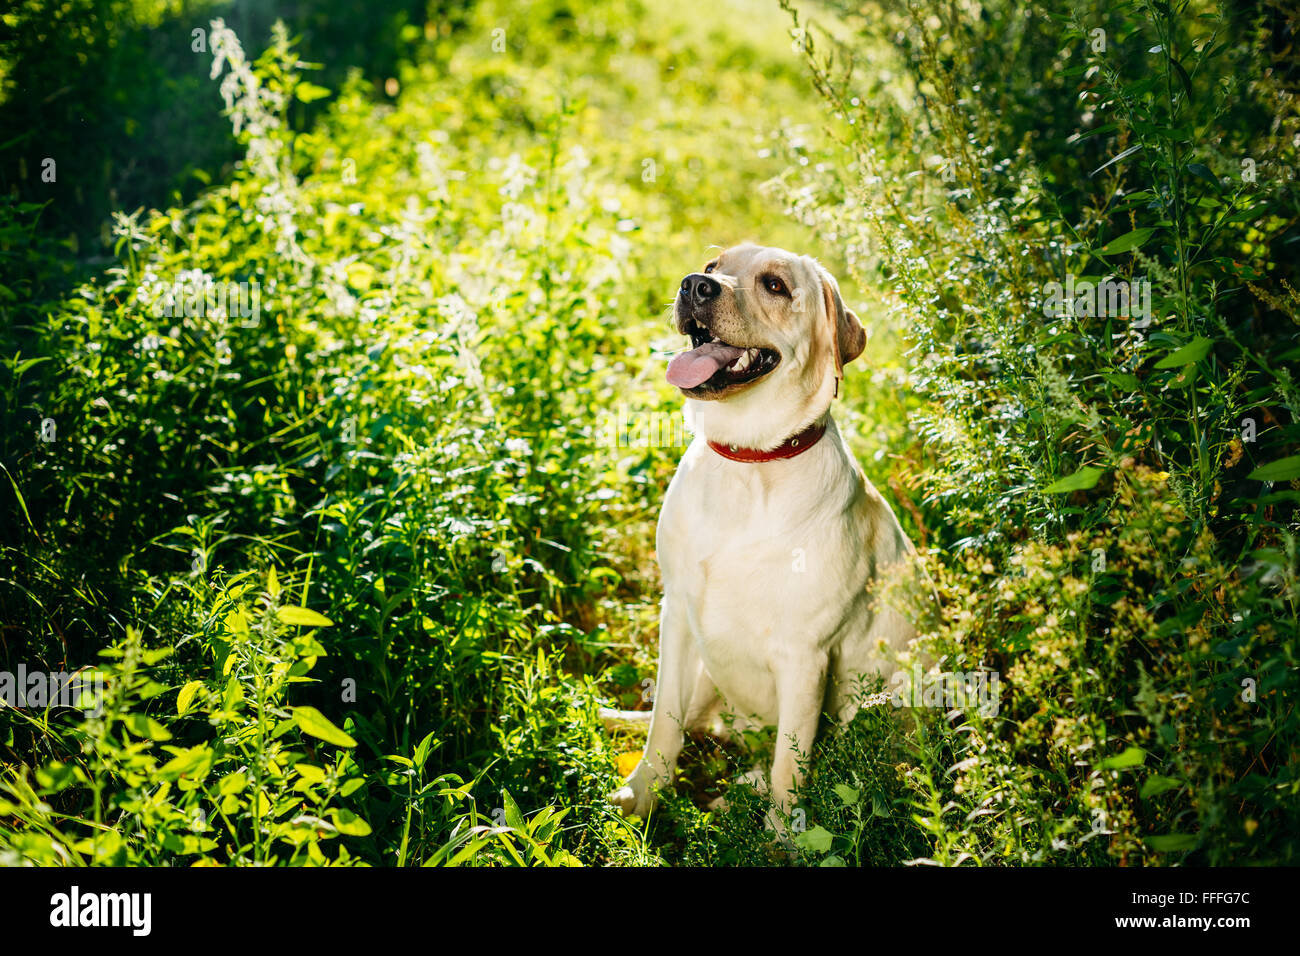 Happy White Labrador Retriever Dog Sitting In Grass, Forest Park Background. - Stock Image